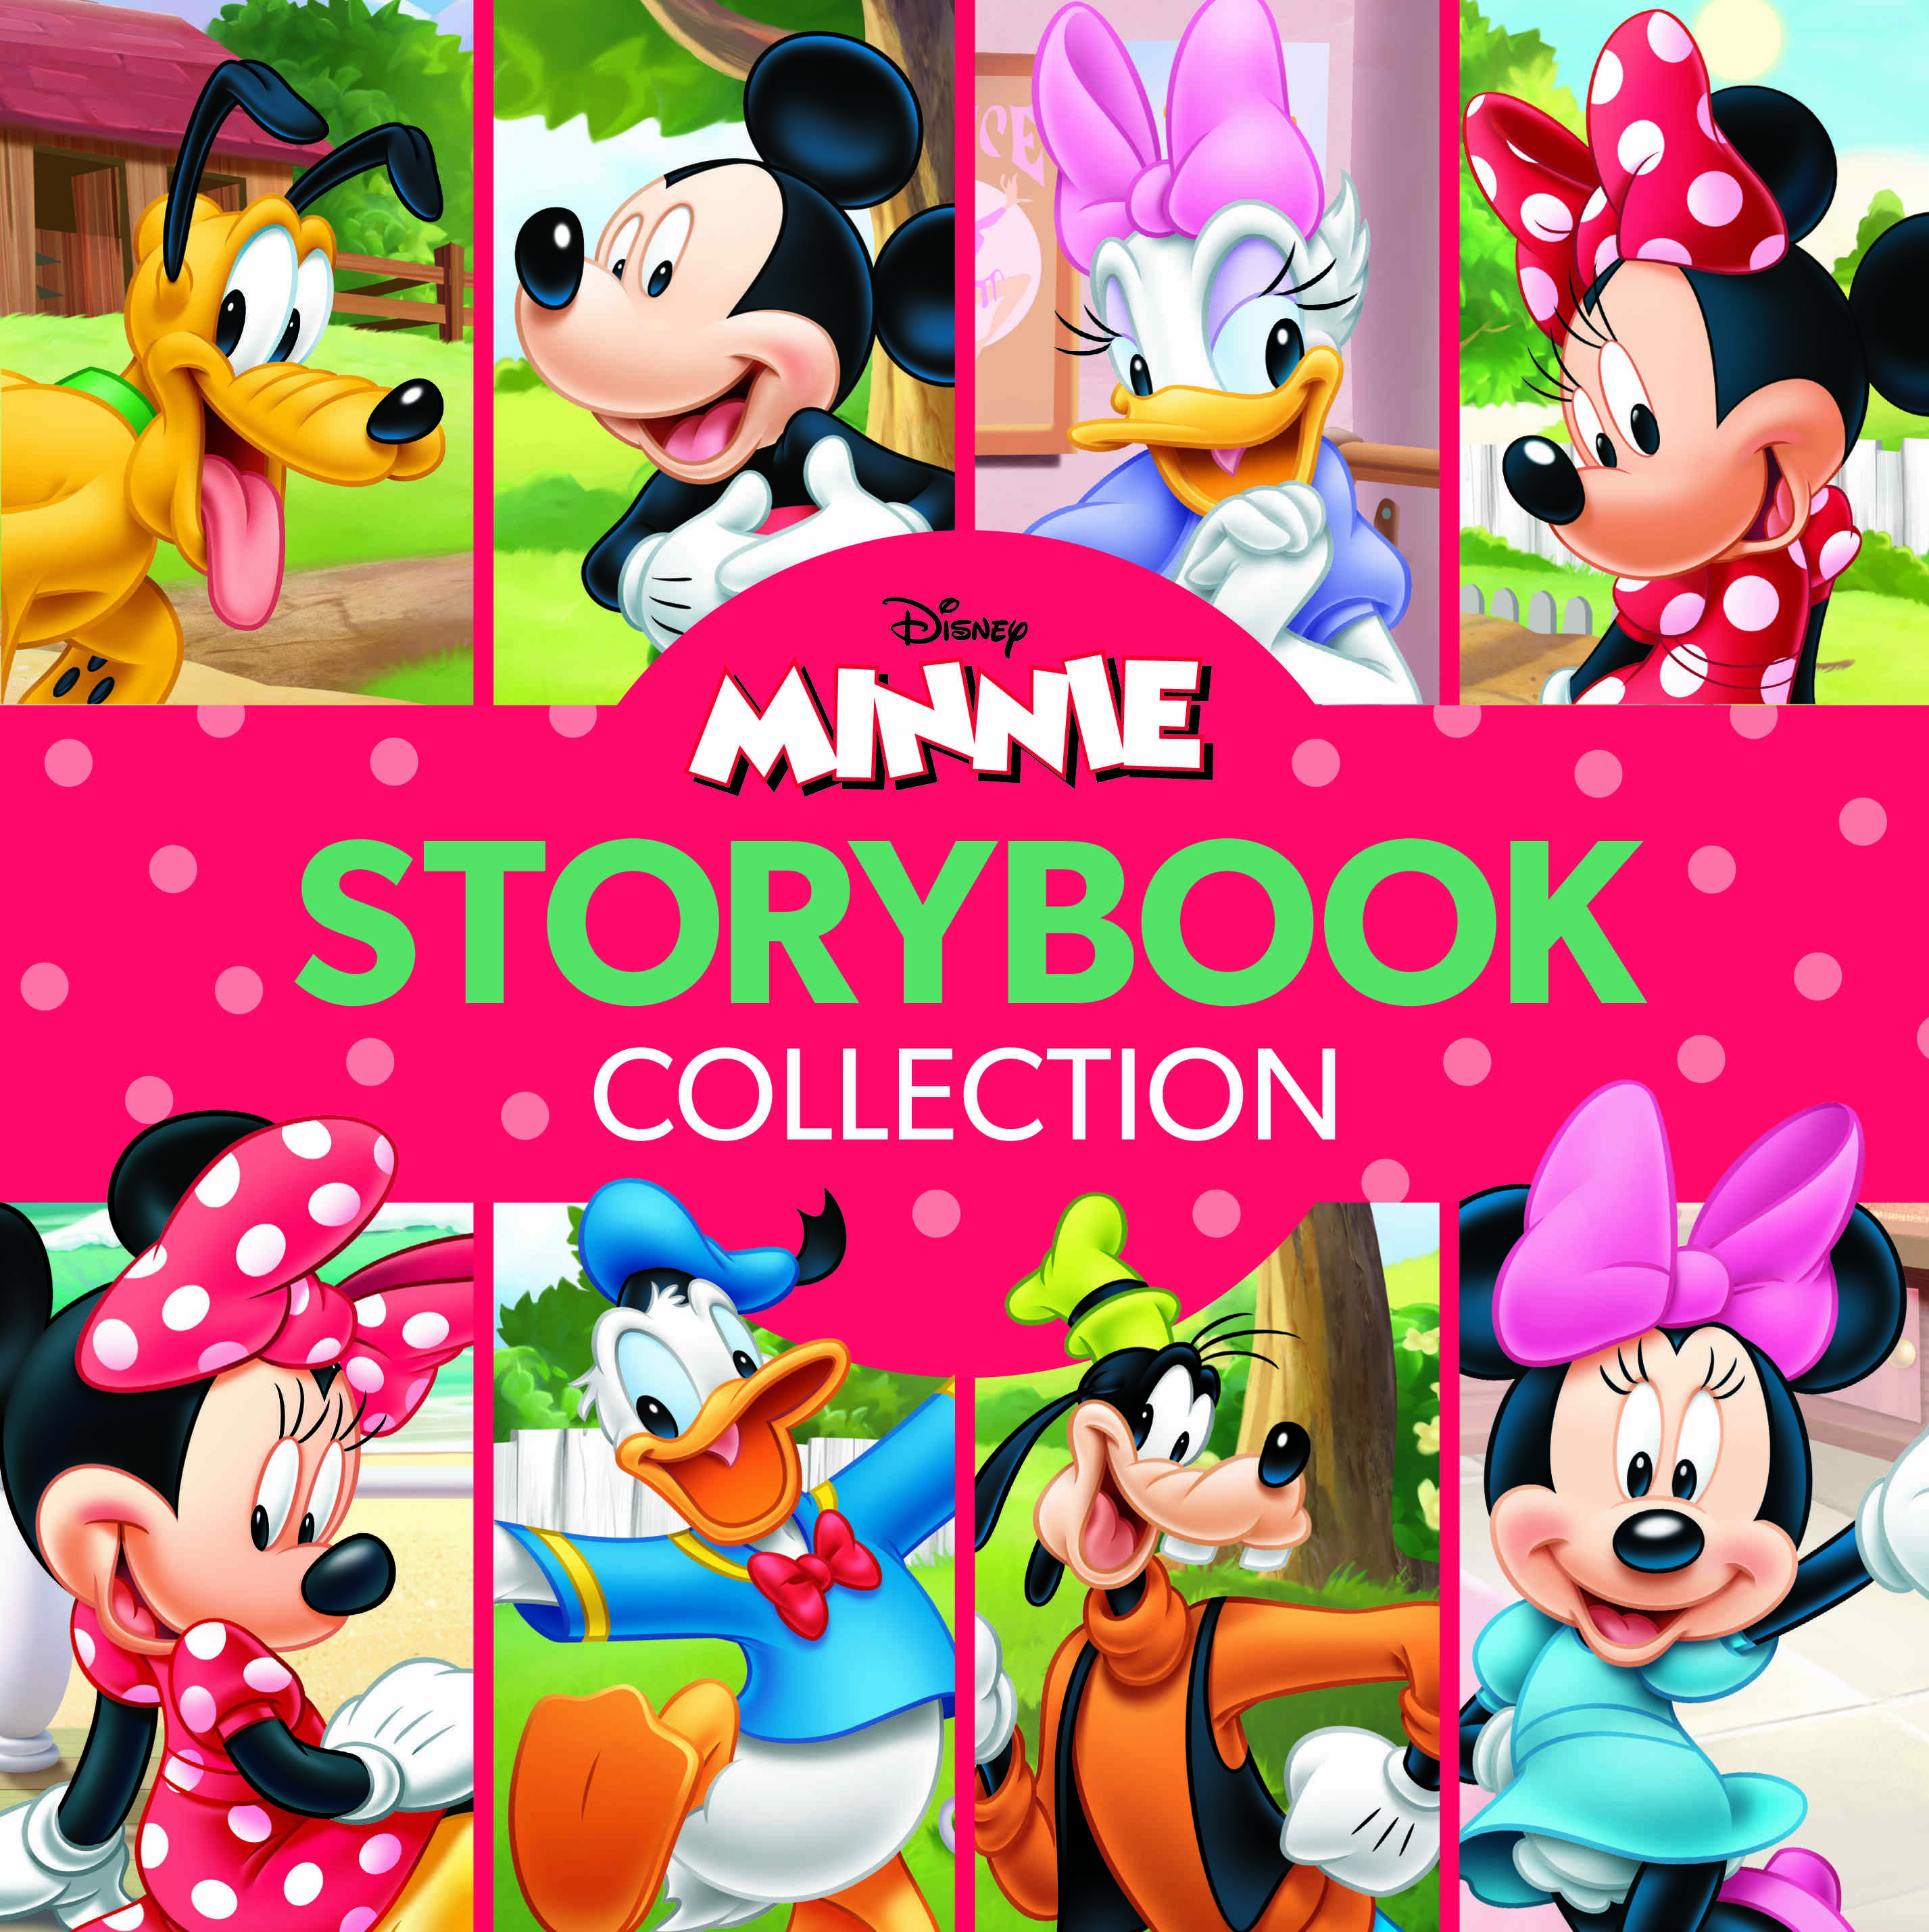 Disney Minnie - Storybook Collection